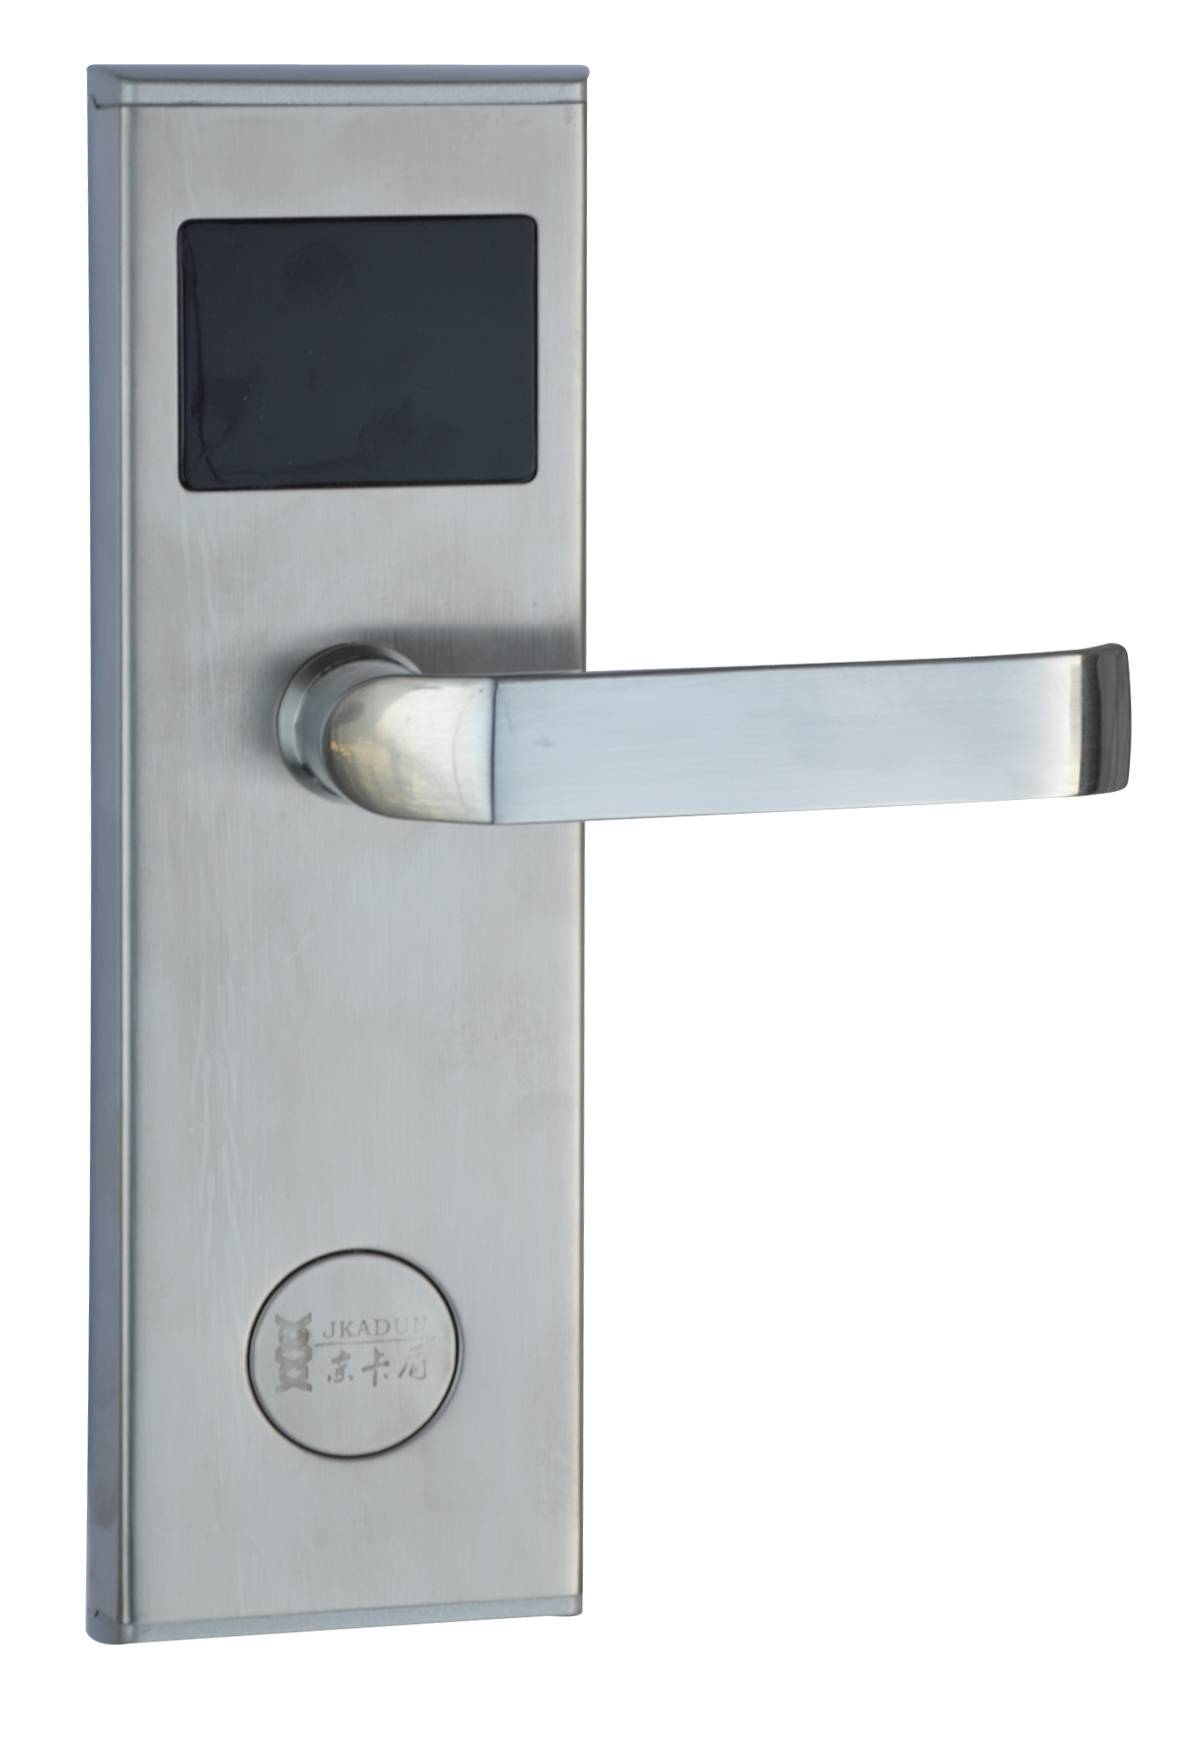 smart hotel card lock, hotel door lock system,keyless lock hotel door lock system